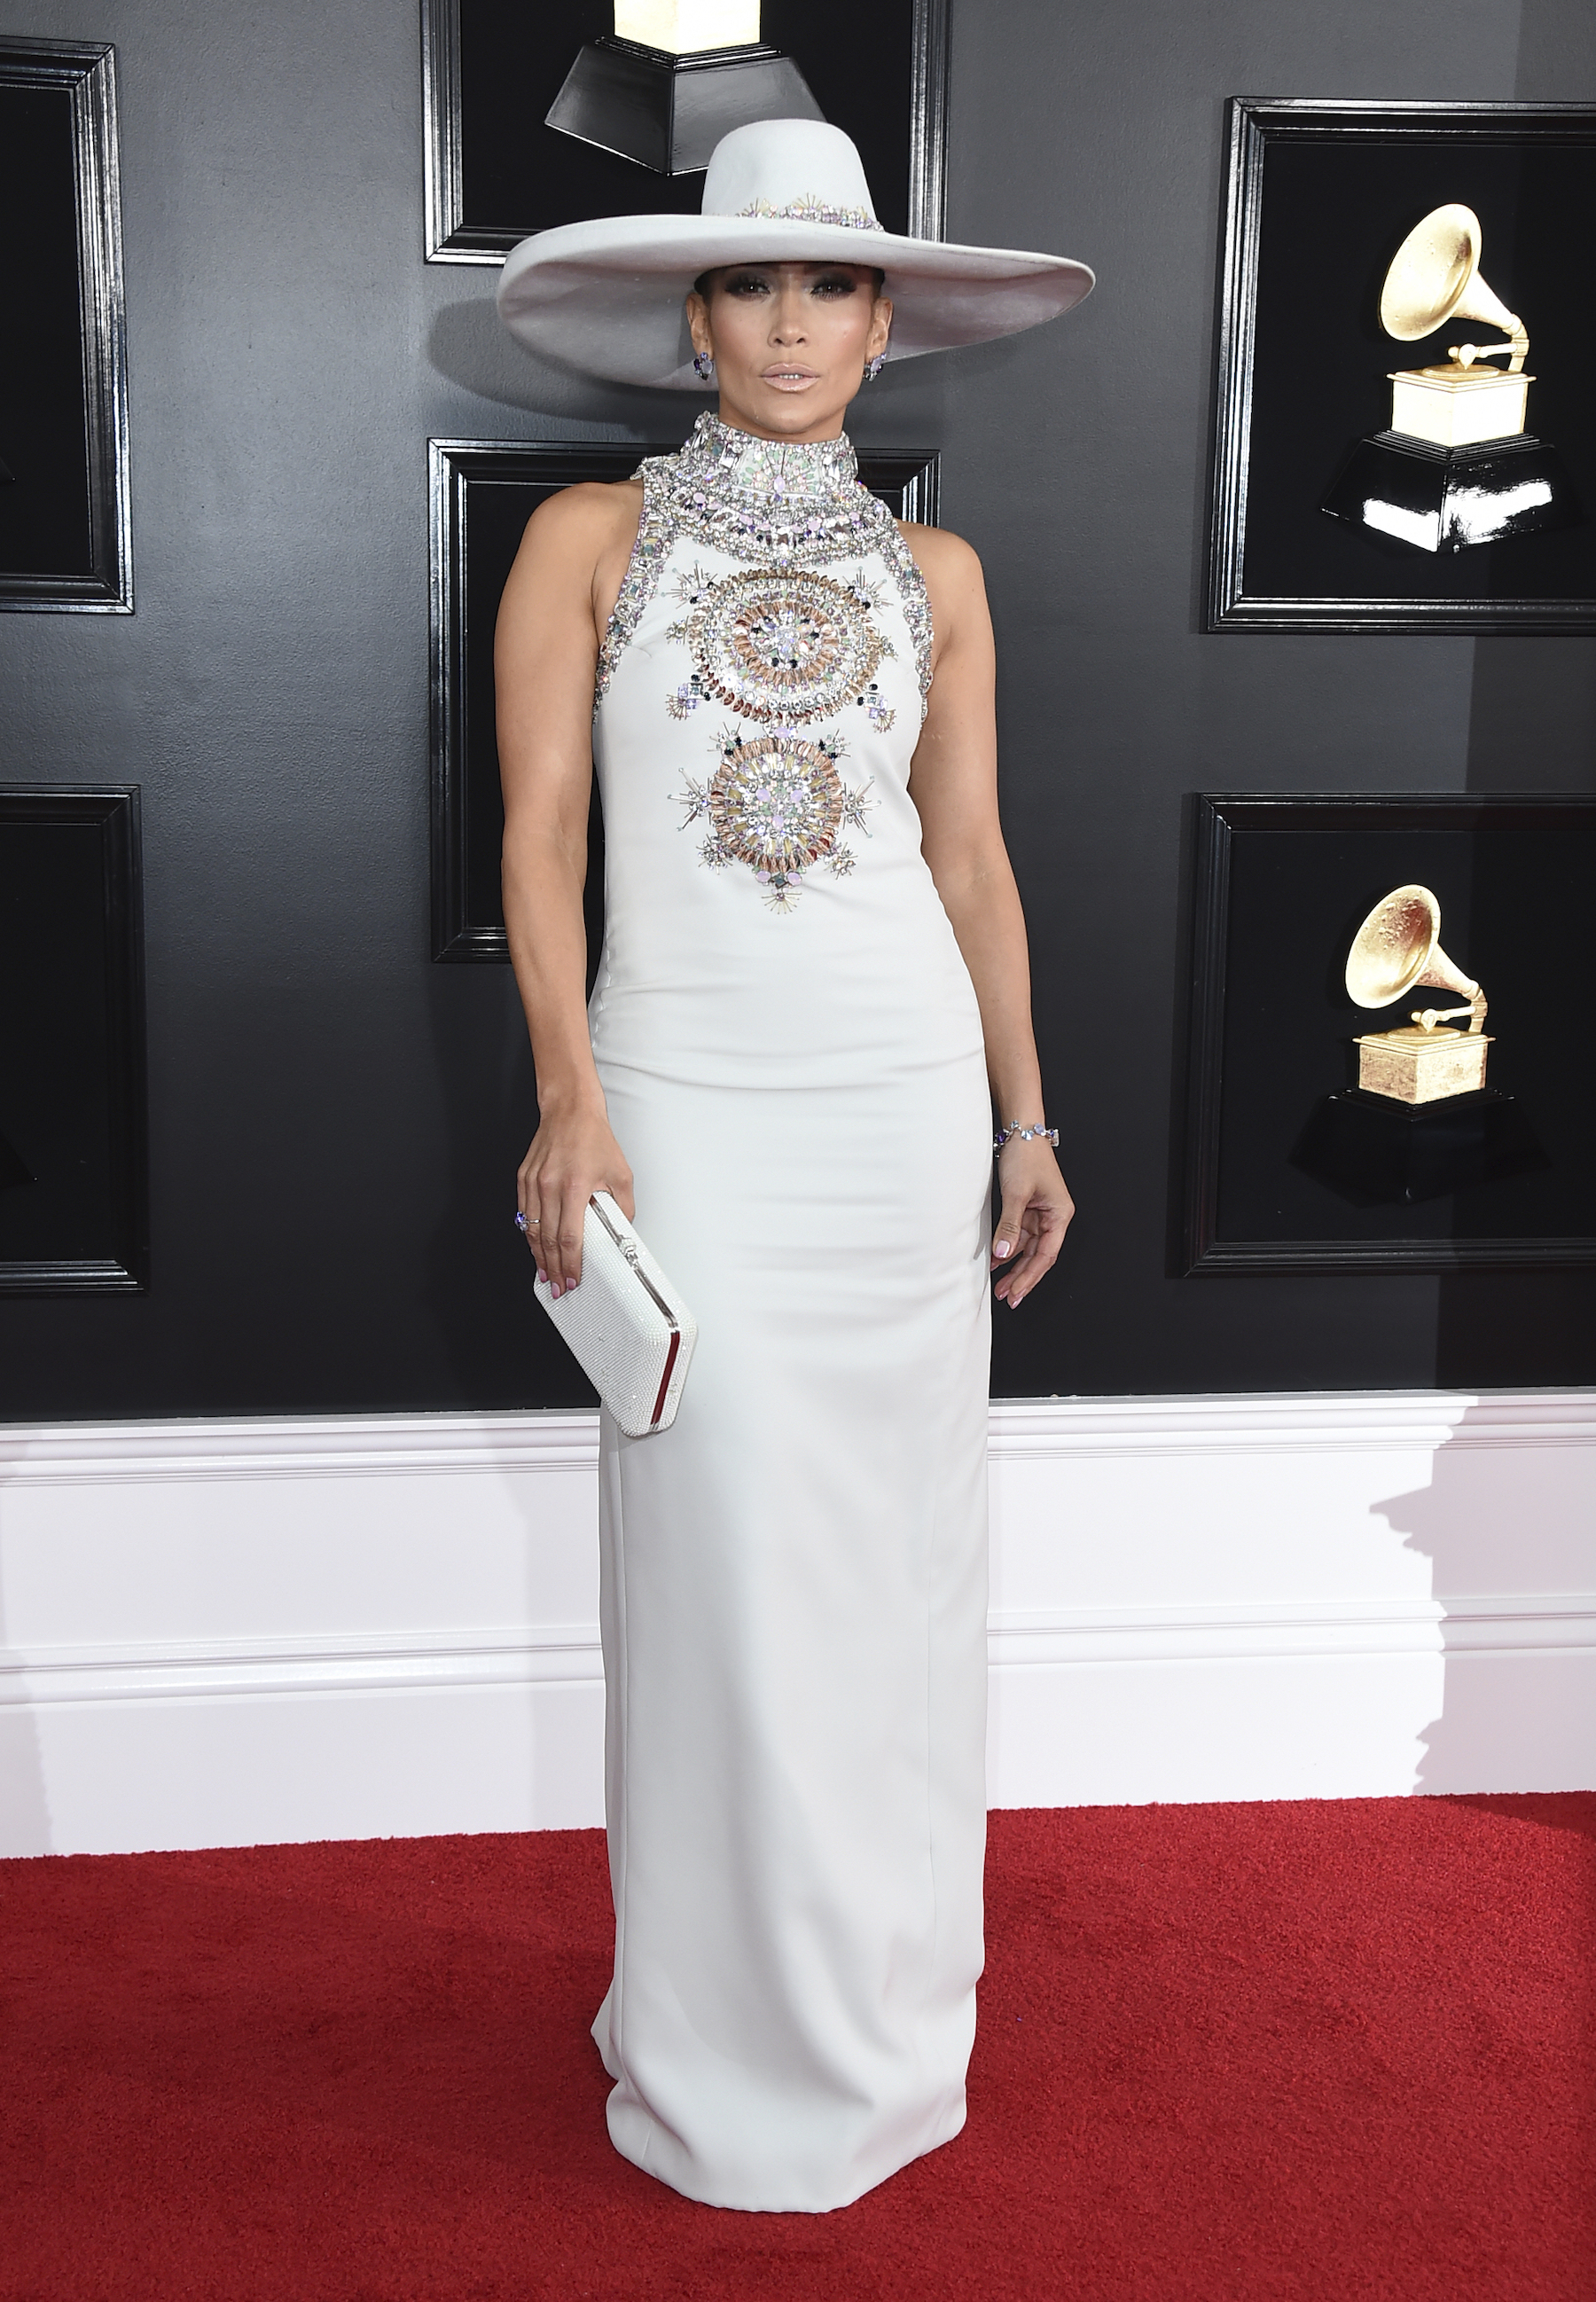 "<div class=""meta image-caption""><div class=""origin-logo origin-image ap""><span>AP</span></div><span class=""caption-text"">Jennifer Lopez arrives at the 61st annual Grammy Awards at the Staples Center on Sunday, Feb. 10, 2019, in Los Angeles. (Jordan Strauss/Invision/AP)</span></div>"